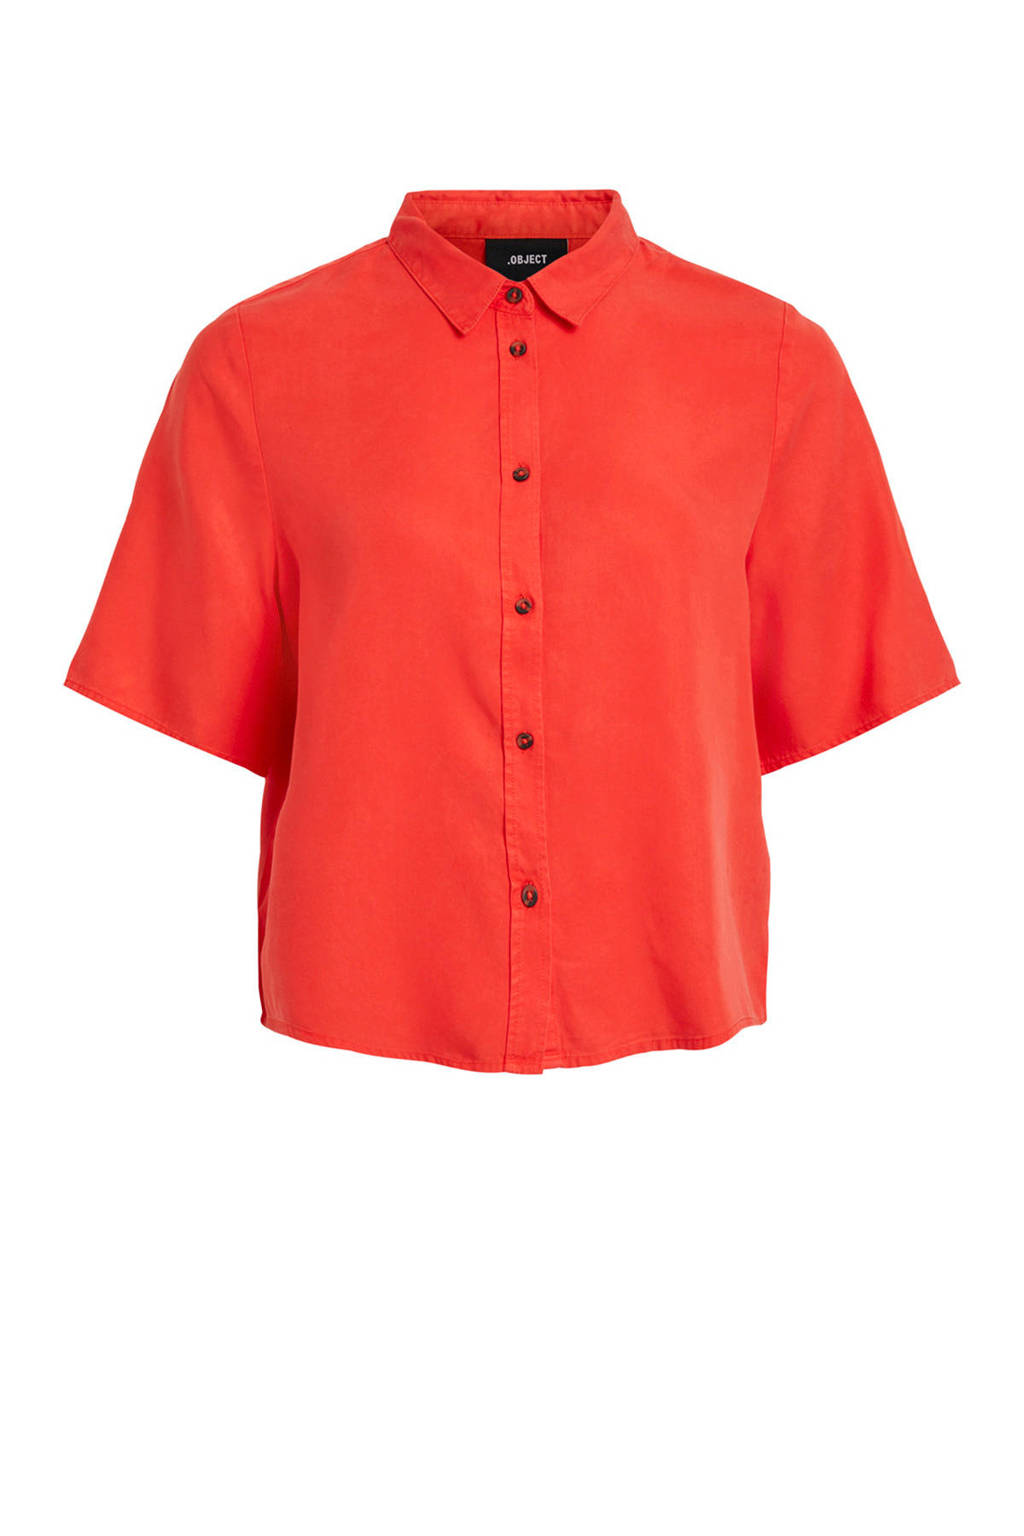 OBJECT blouse rood, Rood